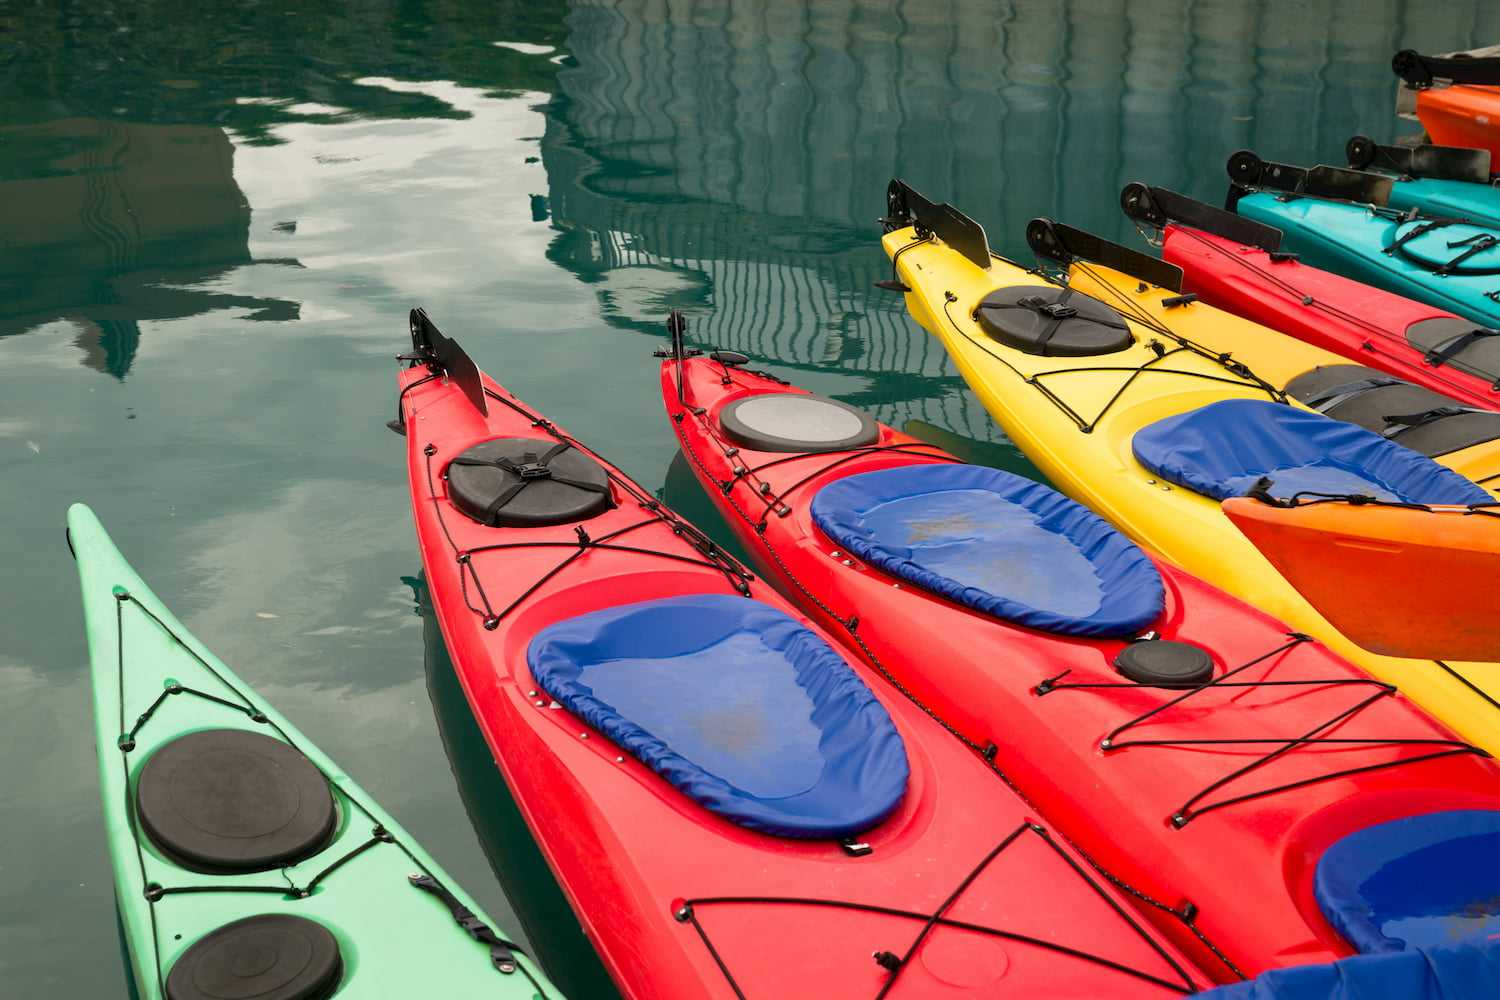 kayaks-in-multiple-color-float-marine-harbor